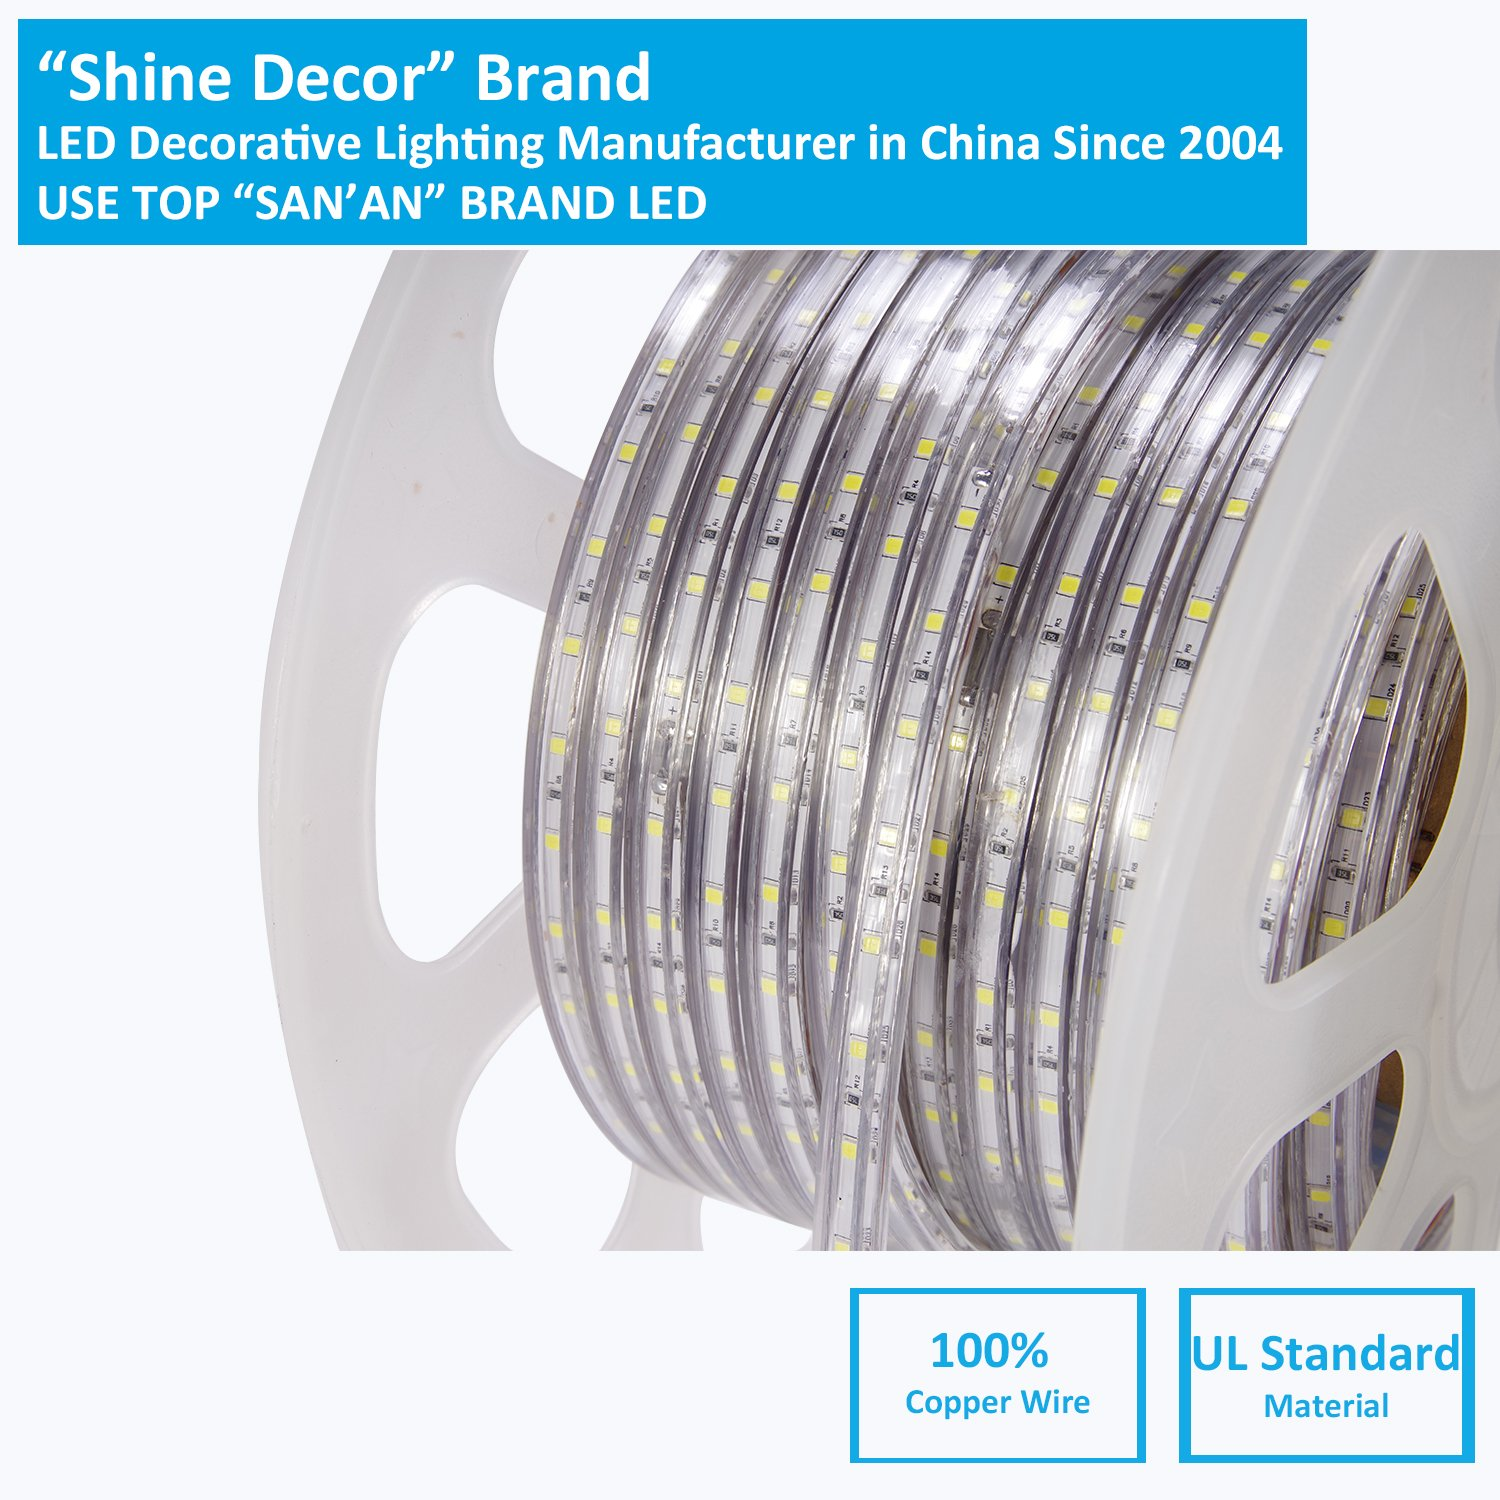 shine decor dimmable Led Strip Lights, Rope Light, High voltage 110V-120V, SMD 2835 60Led/M, 150ft/roll, 3000K Warm White, With plastic tube cover, flexible indoor/outdoor use, Accessories included